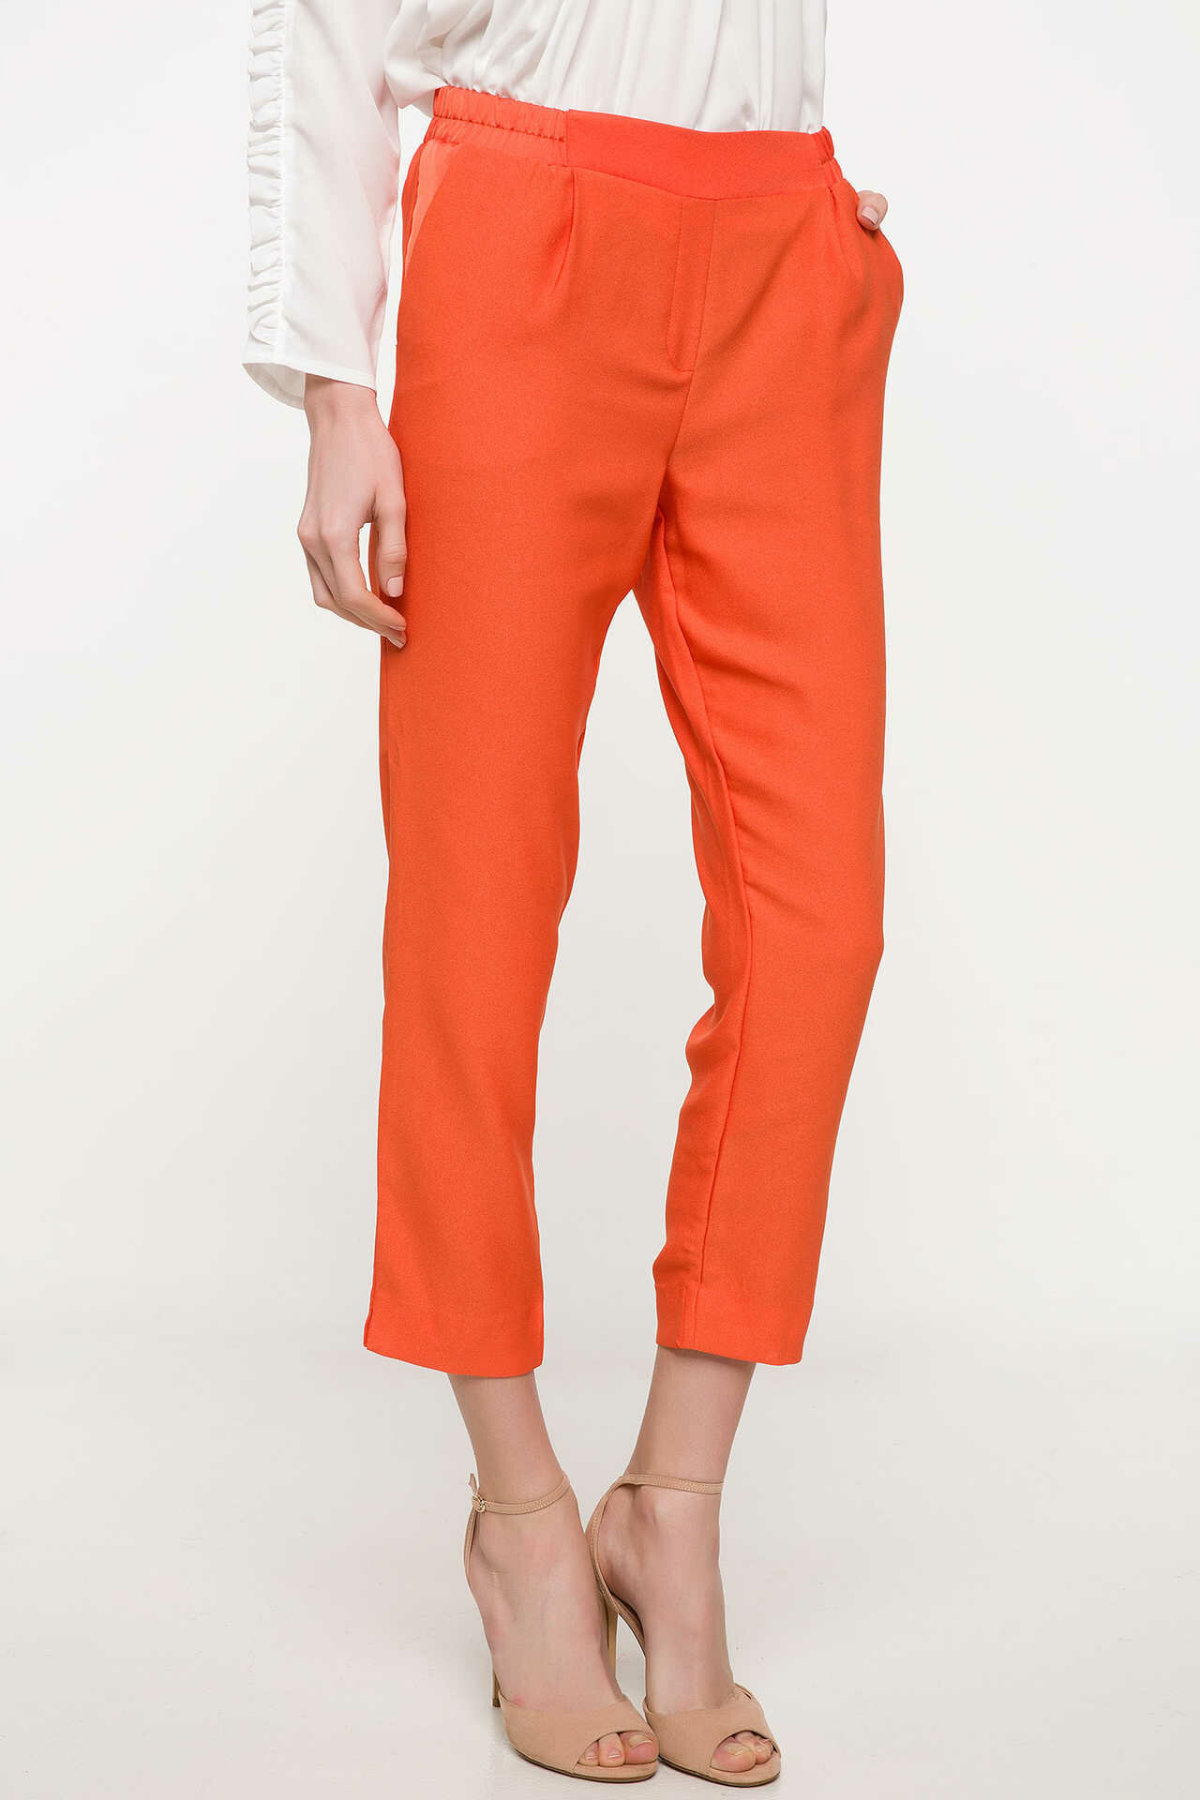 DeFacto Woman Spring Cargo Pants Women Orange Blue Long Pants Female Skinny Mid-waist Bottoms Trousers-I9922AZ18SP